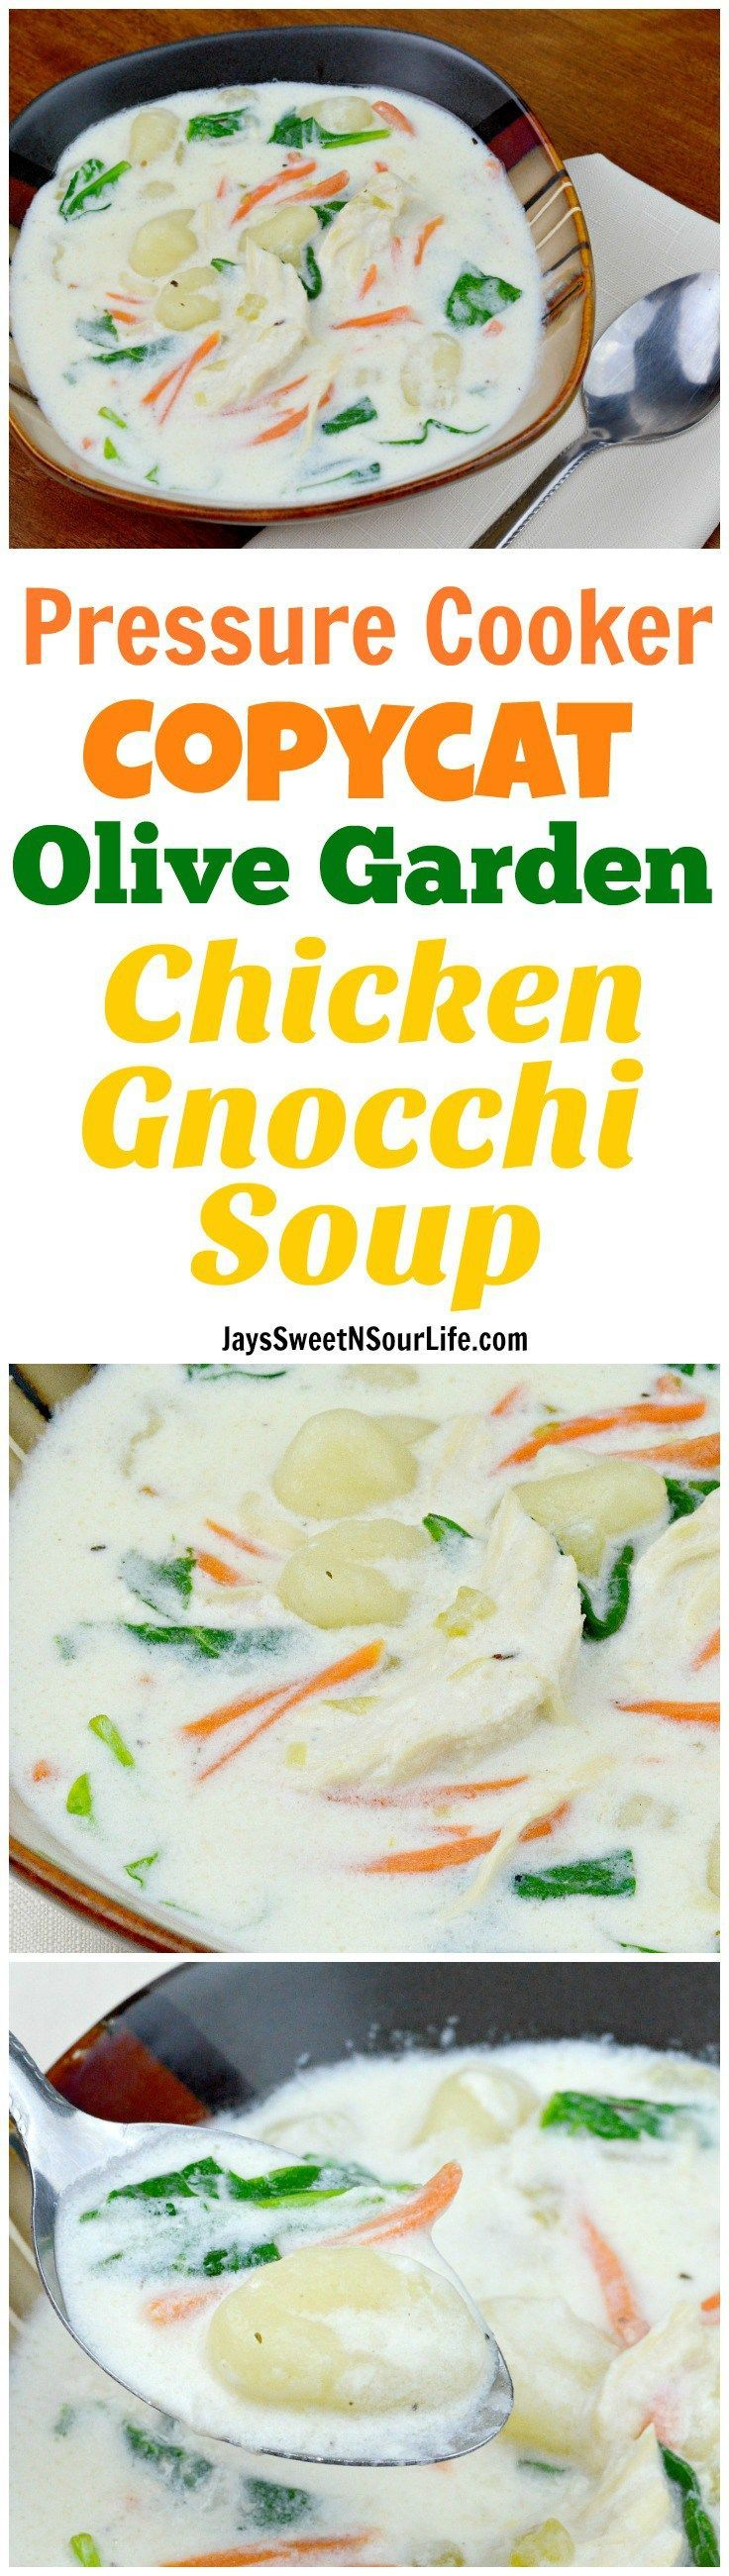 Try this delicious creamy Pressure Cooker Copycat Chicken Gnocchi Soup Recipe that will be sure to make your taste buds dance.